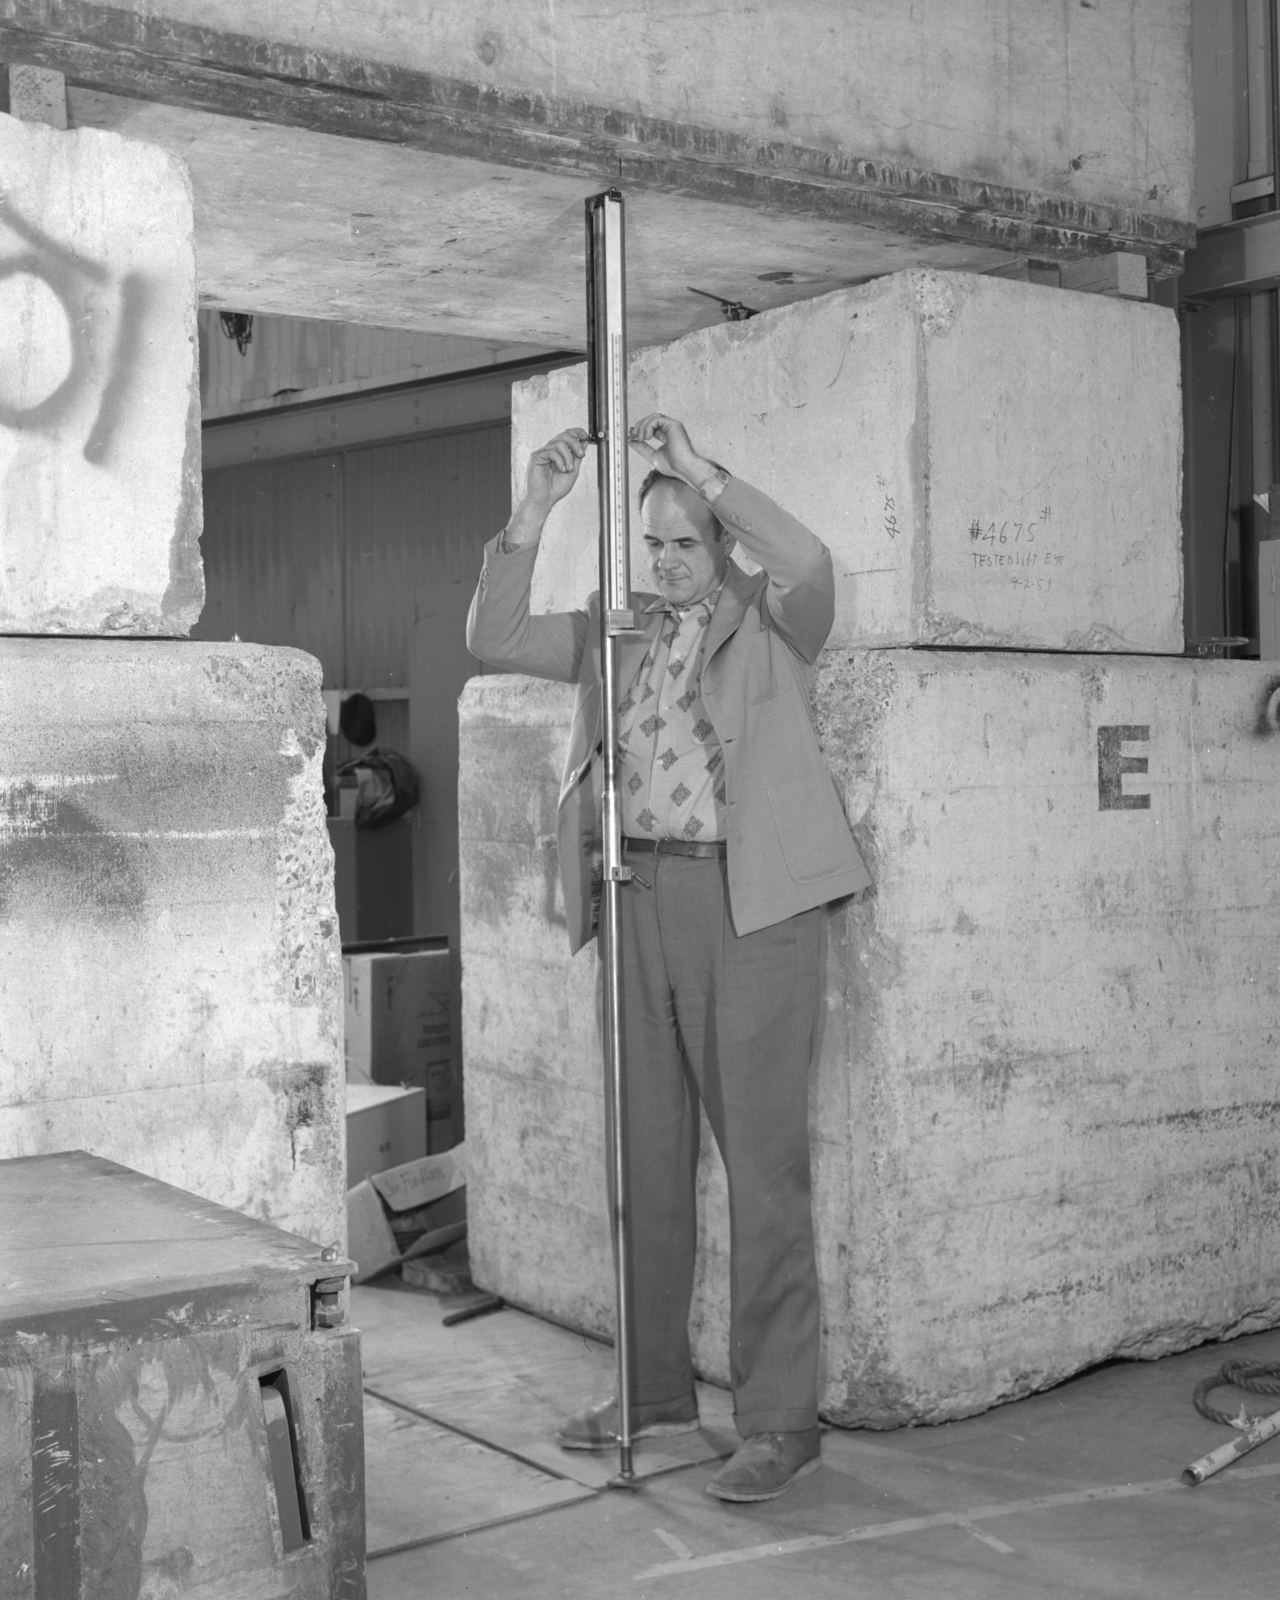 Tunnel elevation rod, Tran Canton. Photograph taken March 6, 1962. Bevatron-